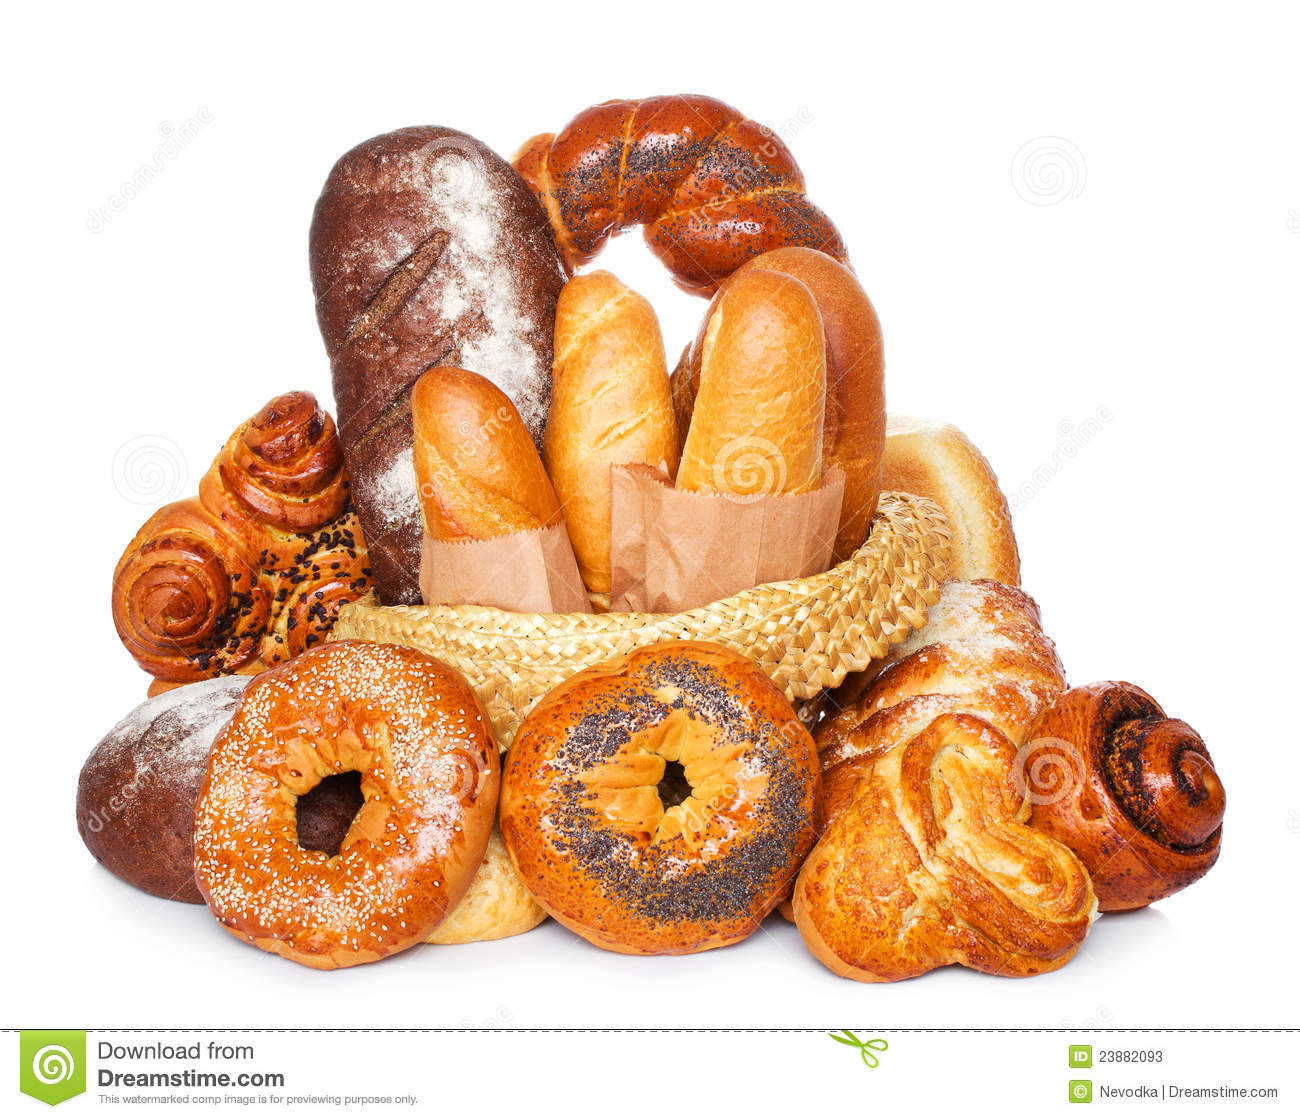 Baño Blanco Para Pan Dulce:Stock Images of Fresh Baked Bread